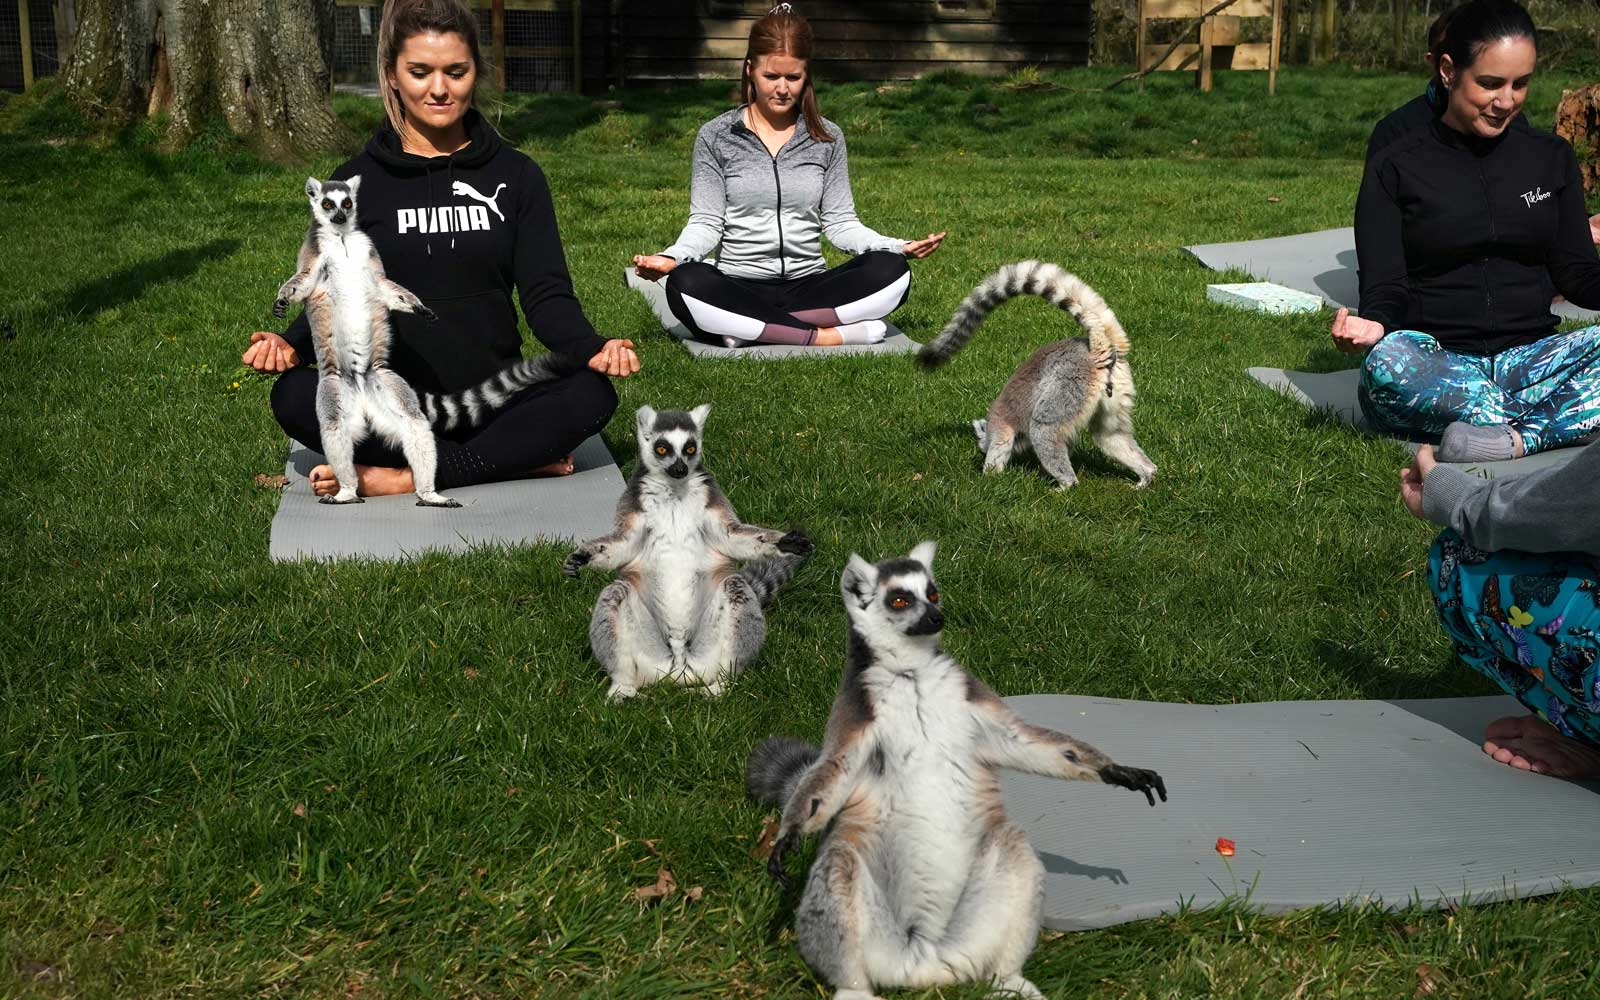 Armathwaite Hall hotel in Keswick, Cumbria holds Lemoga classes with the lemurs from Lake District Wild Life Park